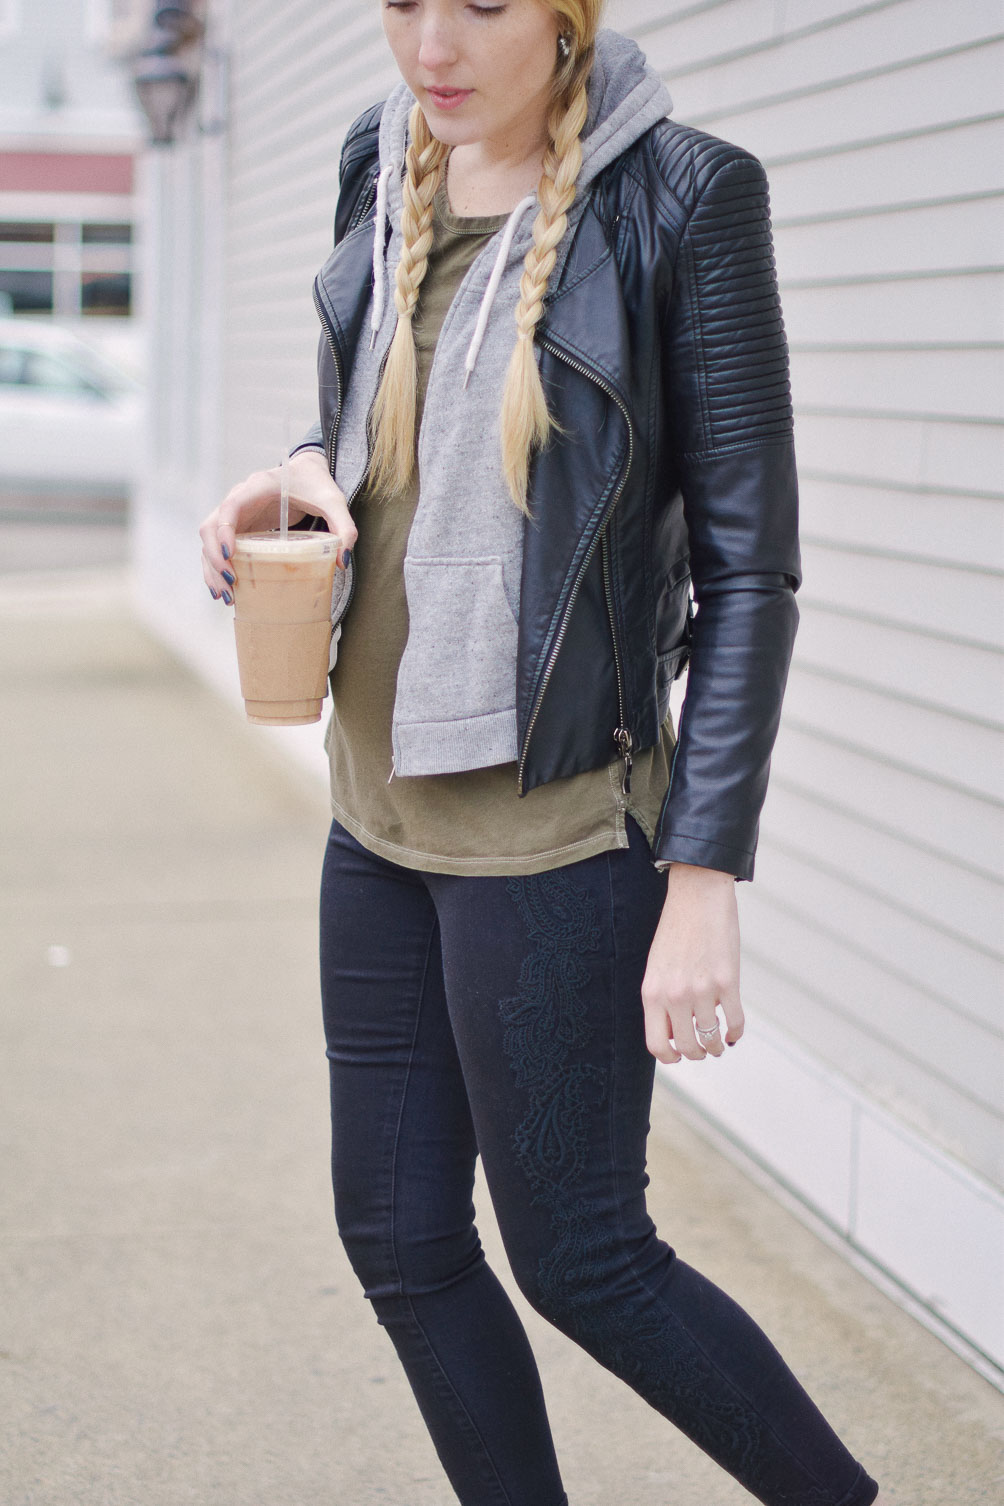 styling black embroidered denim with a vegan leather jacket and oxblood block heel loafers